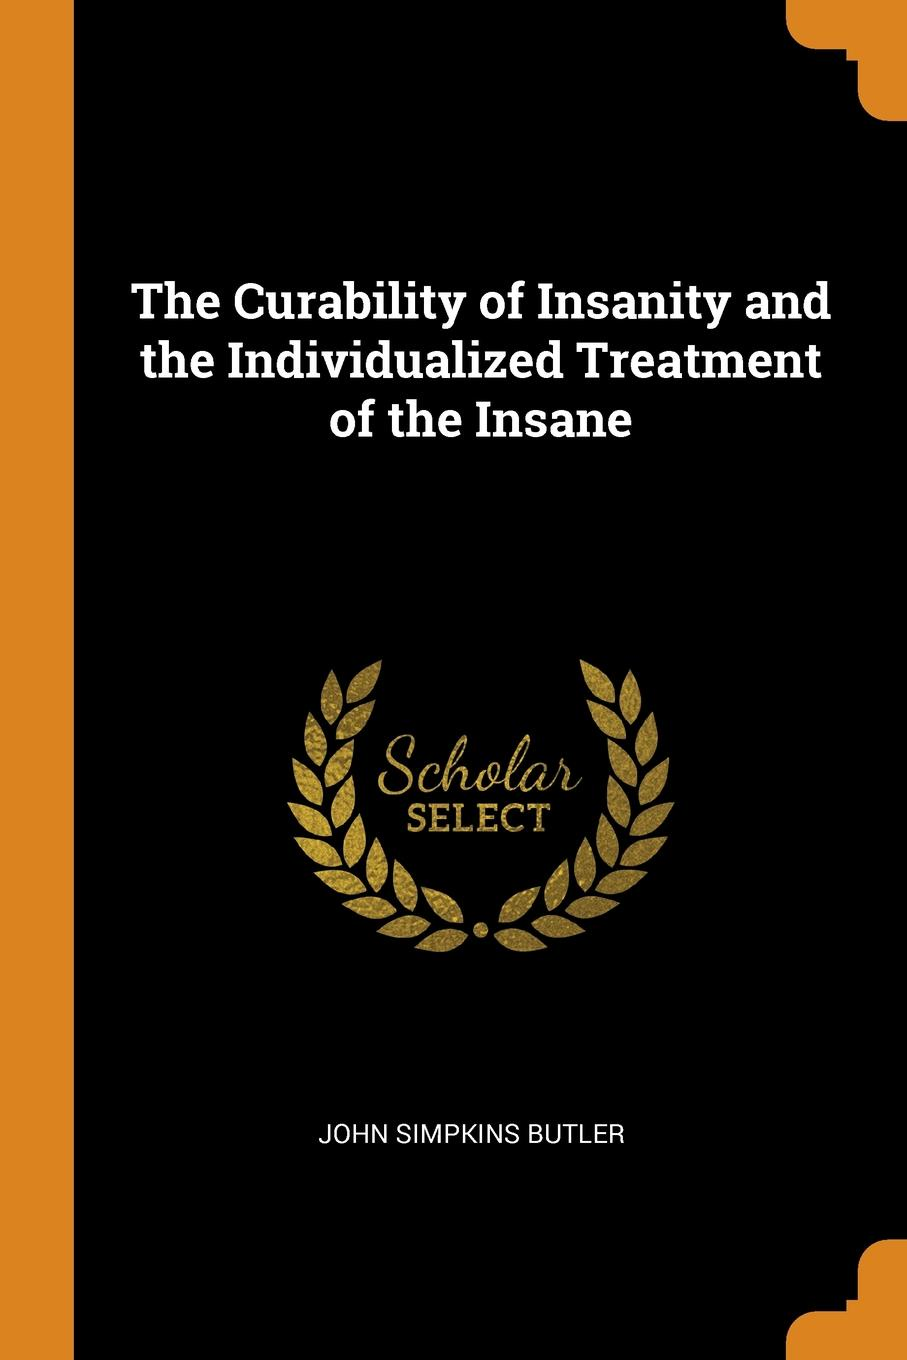 The Curability of Insanity and the Individualized Treatment of the Insane. John Simpkins Butler